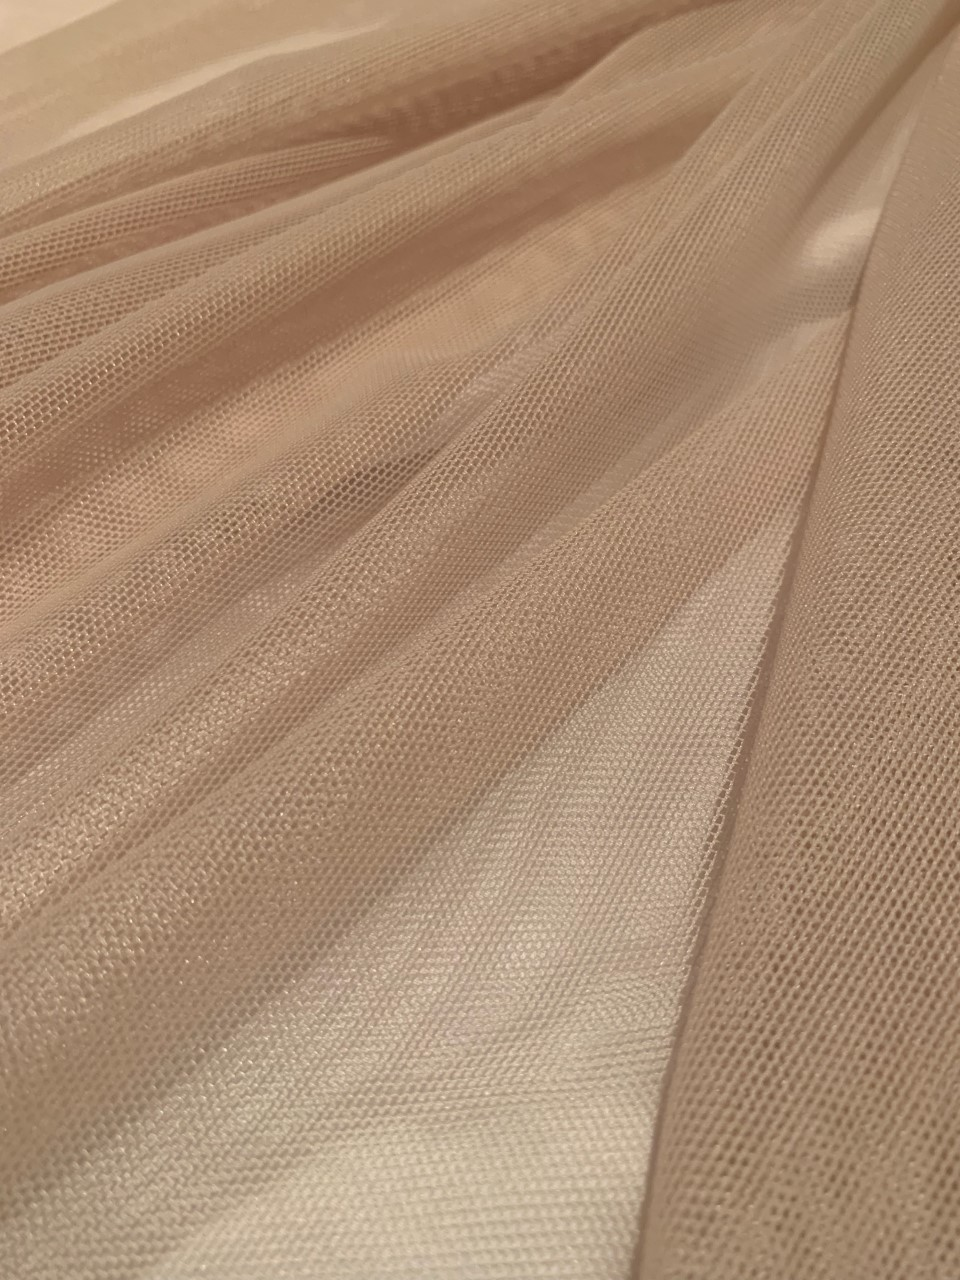 "60"" Nude Power Mesh Fabric 80% Poly 20% Spandex Per Yard"